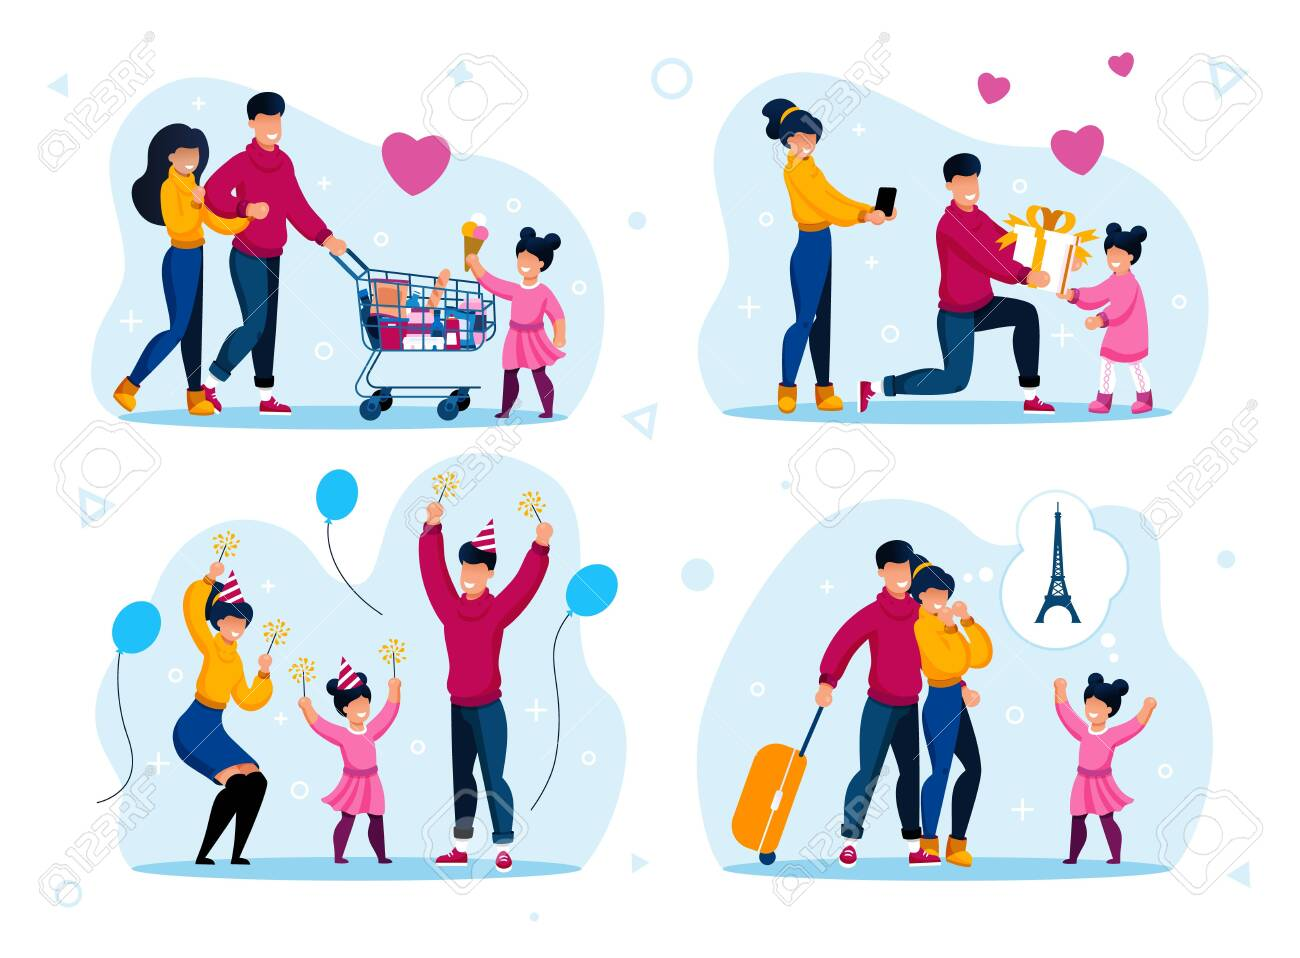 Family Celebrations and Recreation Trendy Flat Vector Concepts Set. Parents with Children Shopping in Supermarket, Having Fun on Party, Celebrating Birthday, Going on Vacation Journey Illustration - 144192983